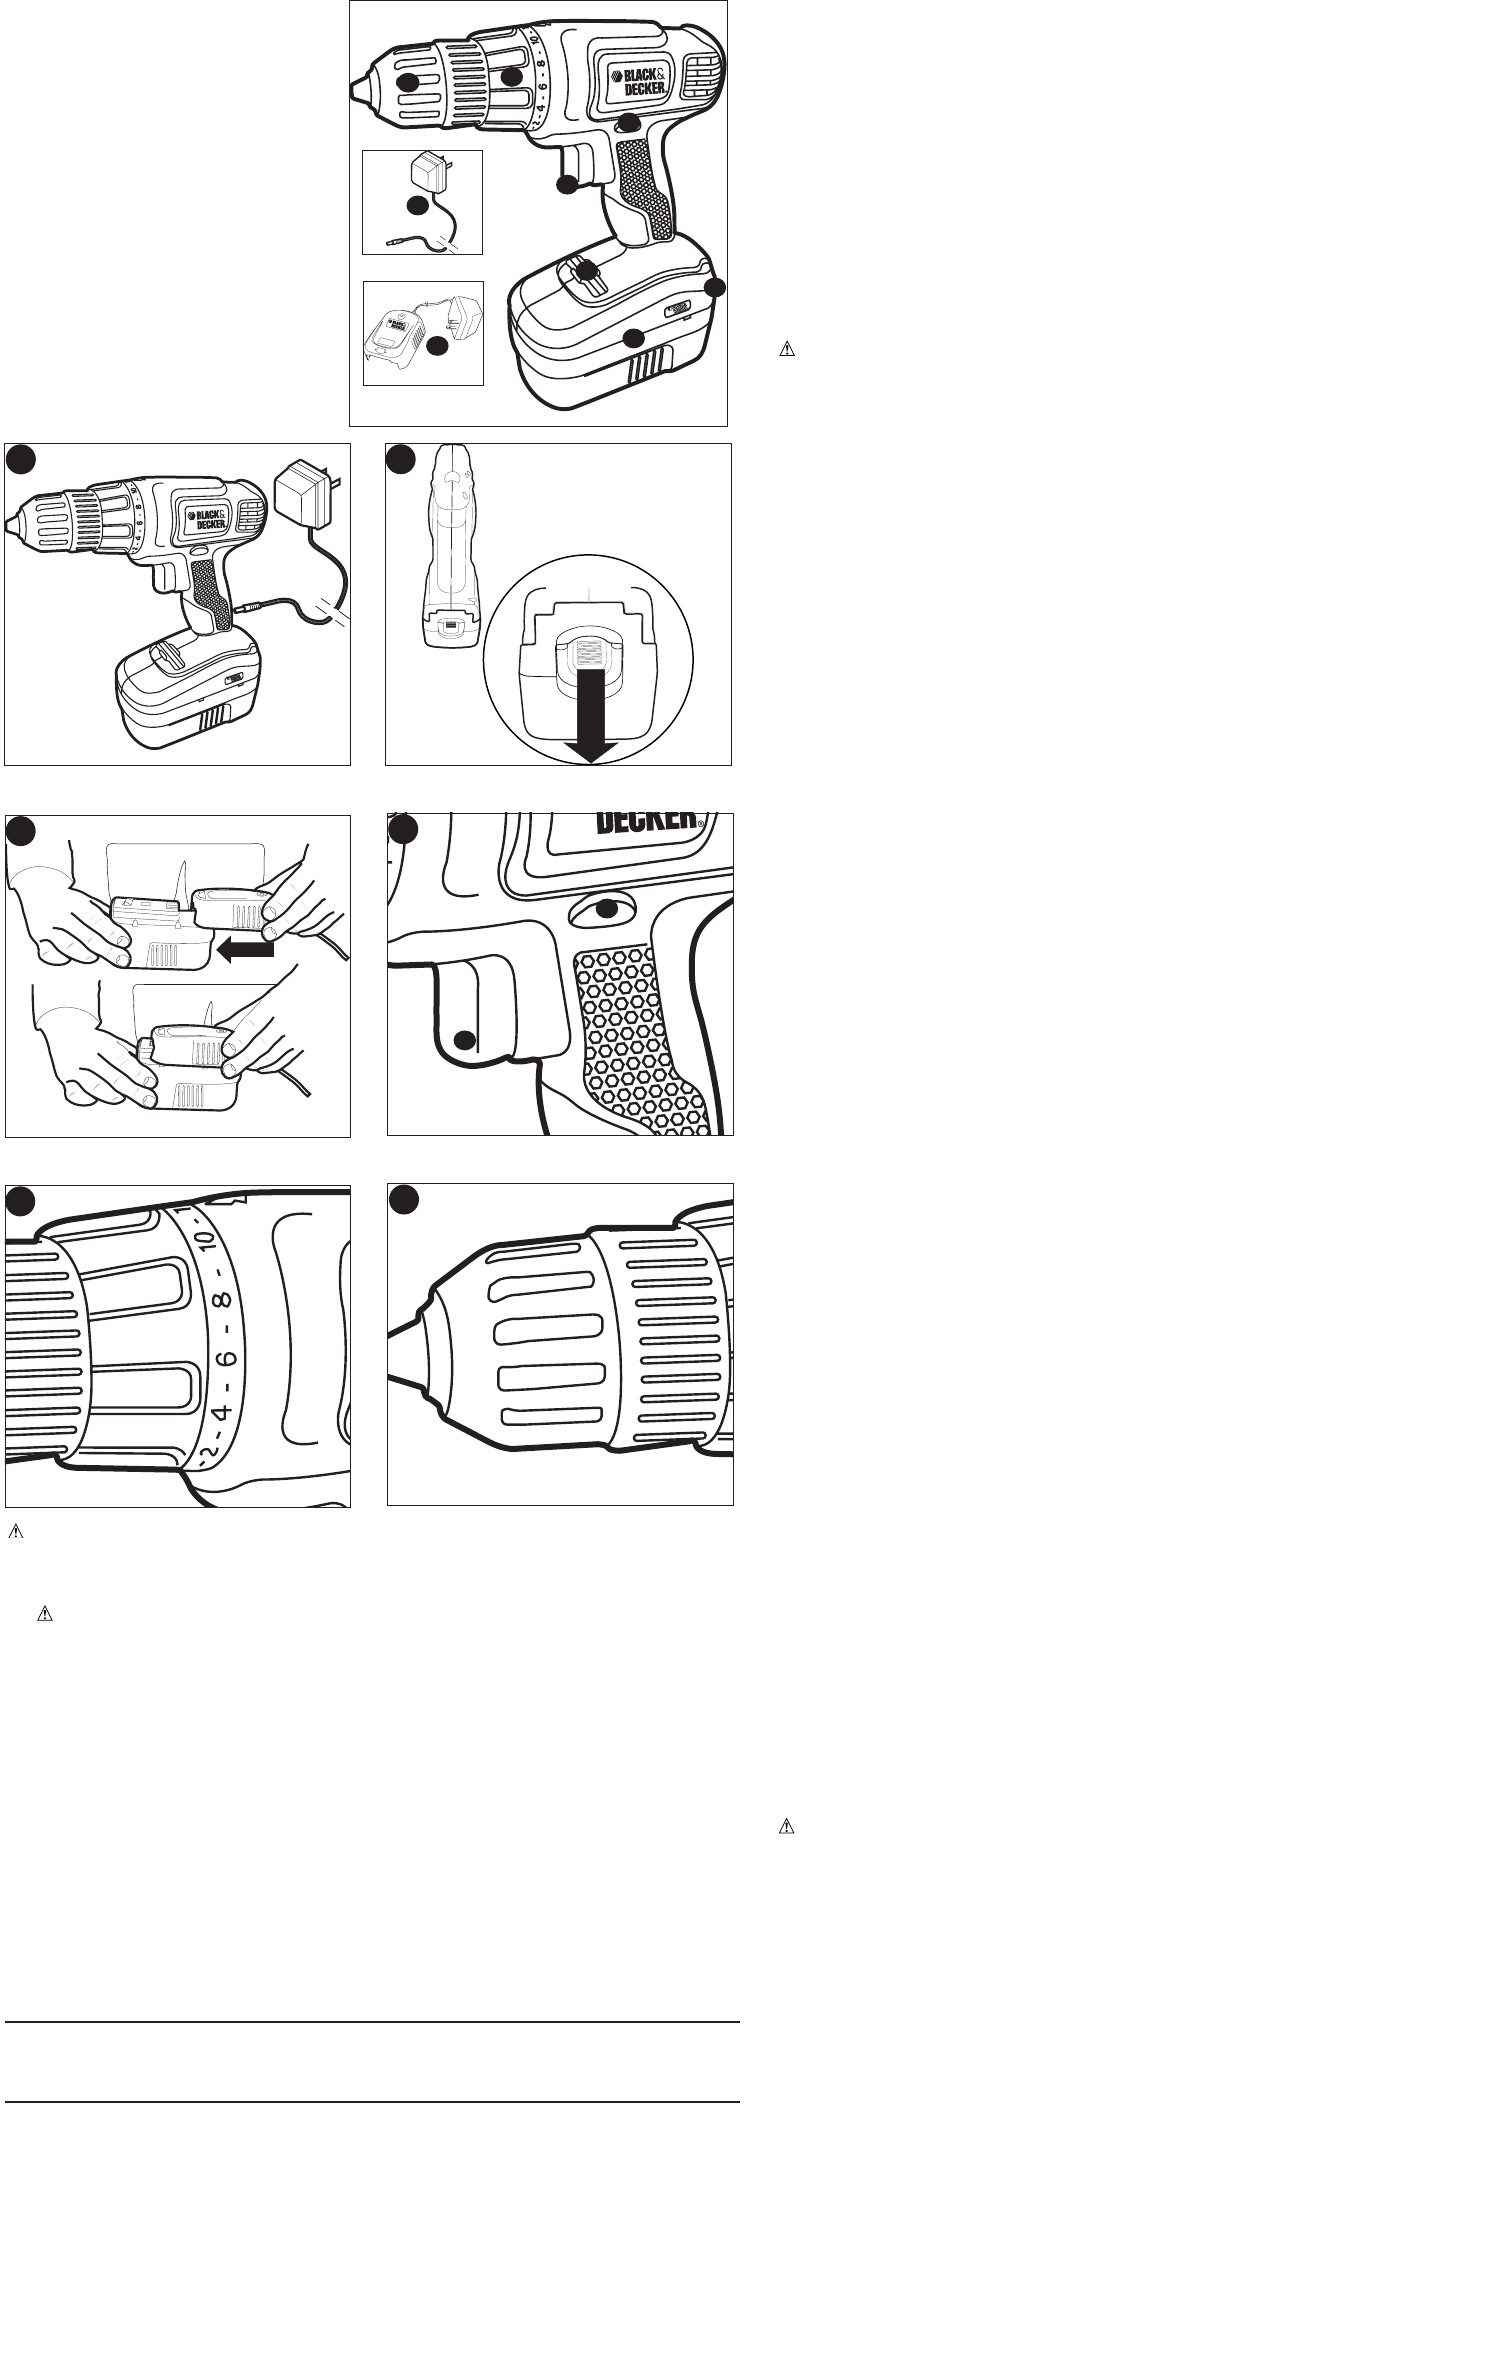 page 2 of black & decker cordless drill gc1800 user guide